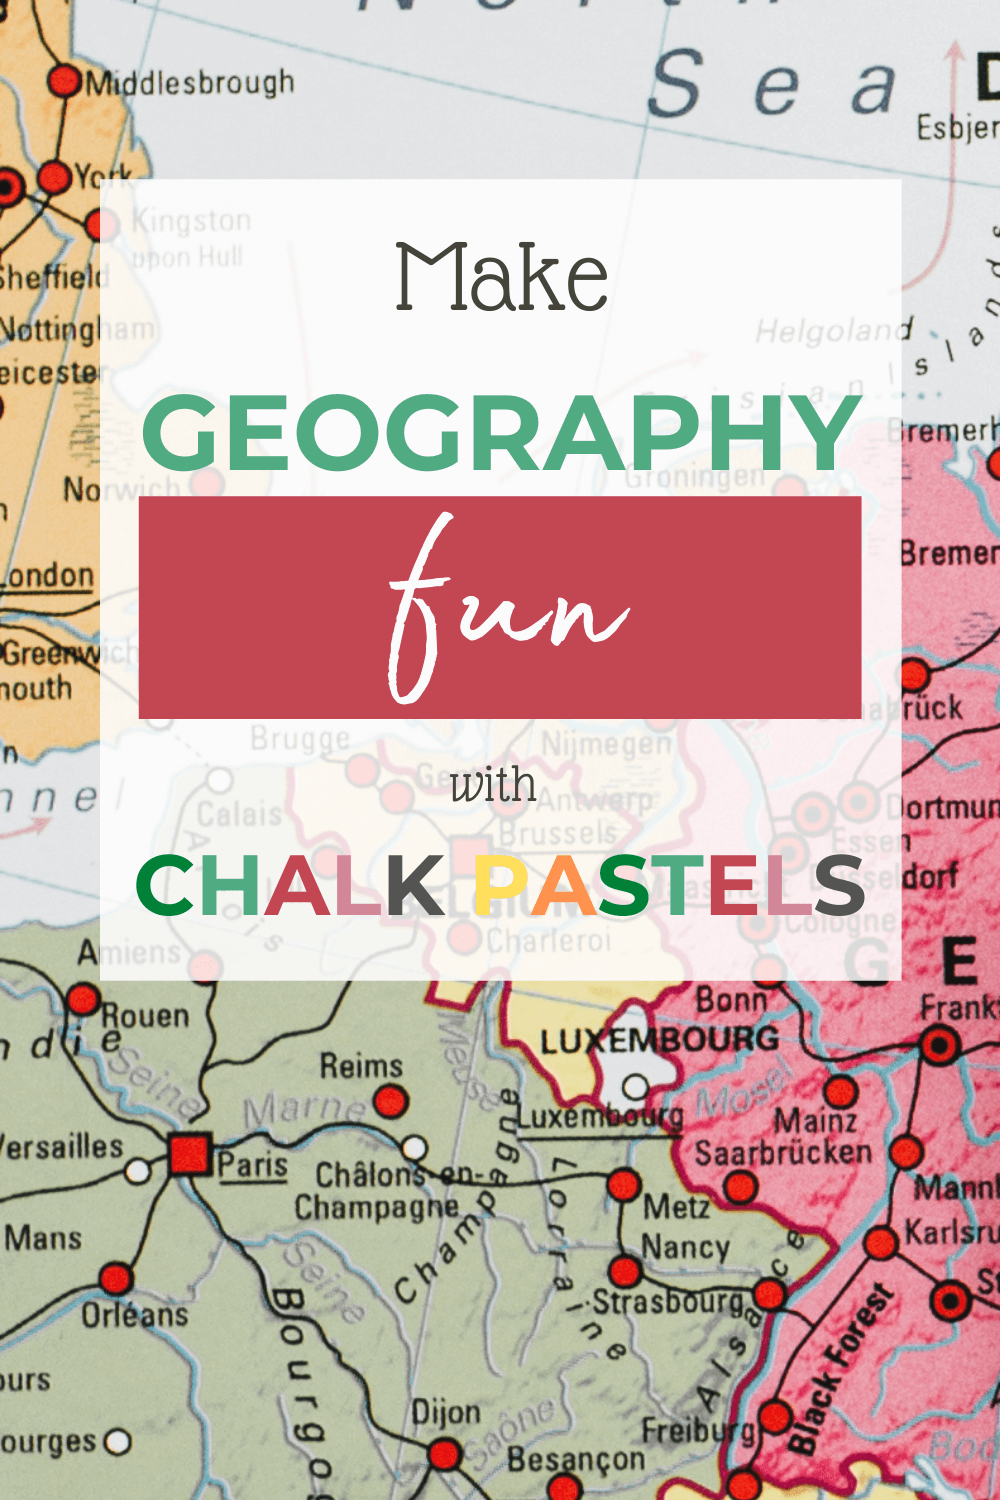 Make Geography Fun with Chalk Pastels: Are you looking for a unique way to get your kids excited about their homeschool geography? Maybe you have a hands-on learner that just needs something a little extra for their cartography lesson. Now you can make geography fun with chalk pastels! #homeschoolgeography #geography #chalkpastels #chalkpastelart #chalkpastelgeography #chalkpastelmaps #homeschoolart